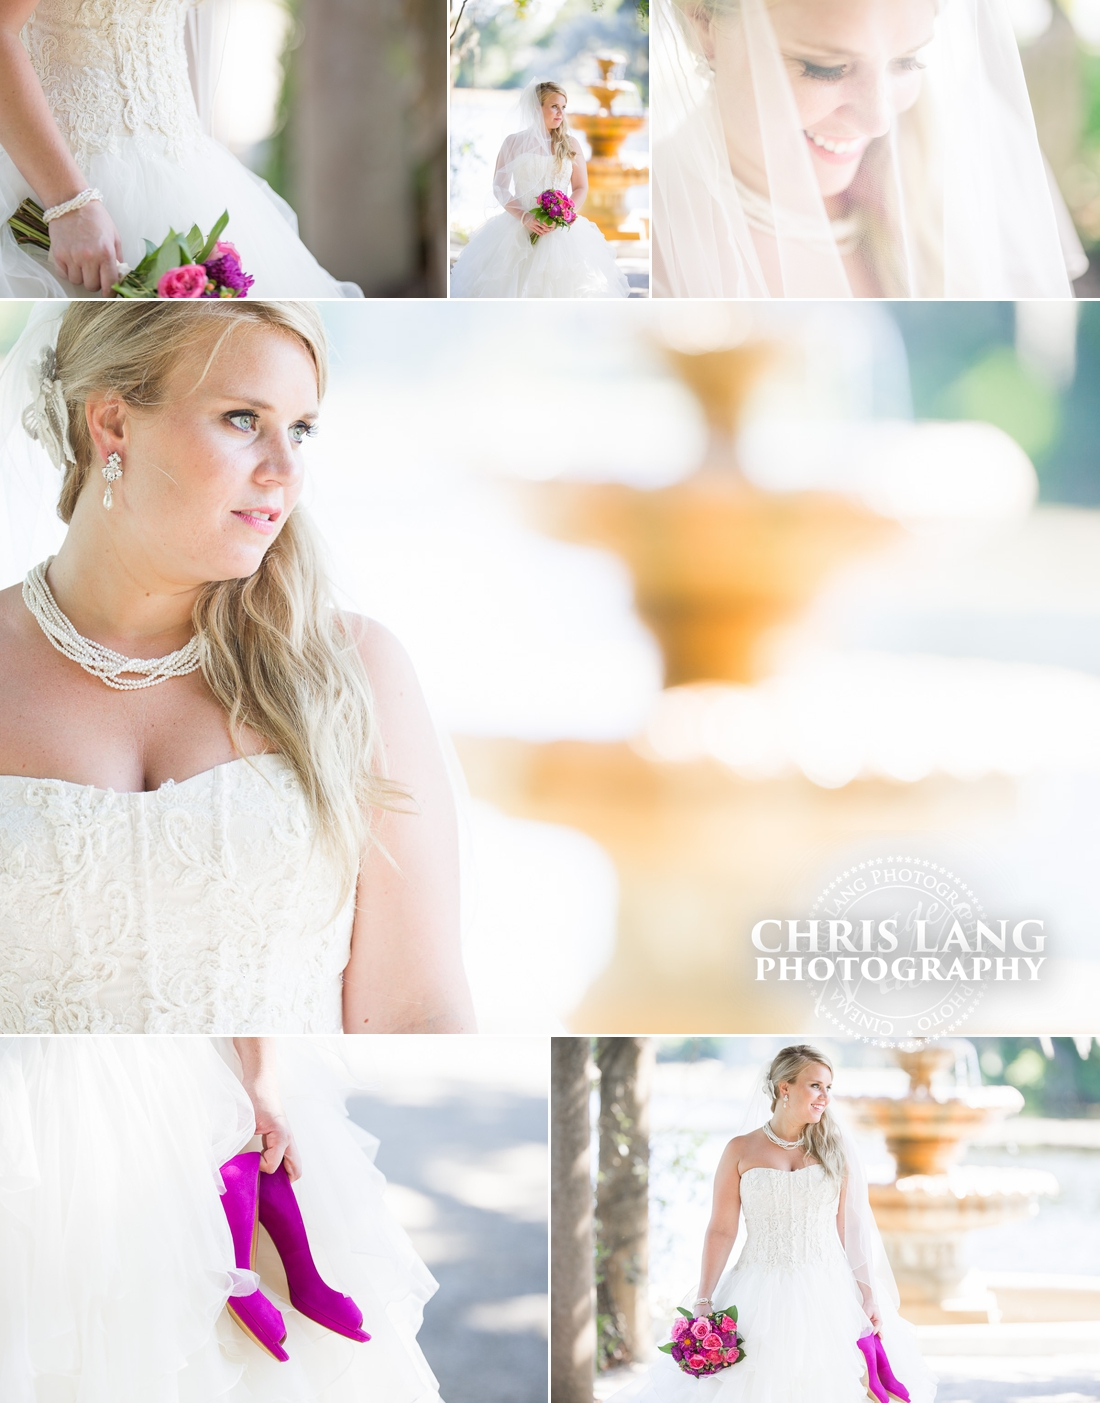 Image of Bridal session at Airlie Gardens -Wilmington NC - Bridal Ideas - Inspiration - Wedding Dress - Garden Weddings - Garden Bridal  Portraits - Chris Lang Photography - NC Wedding Photographers